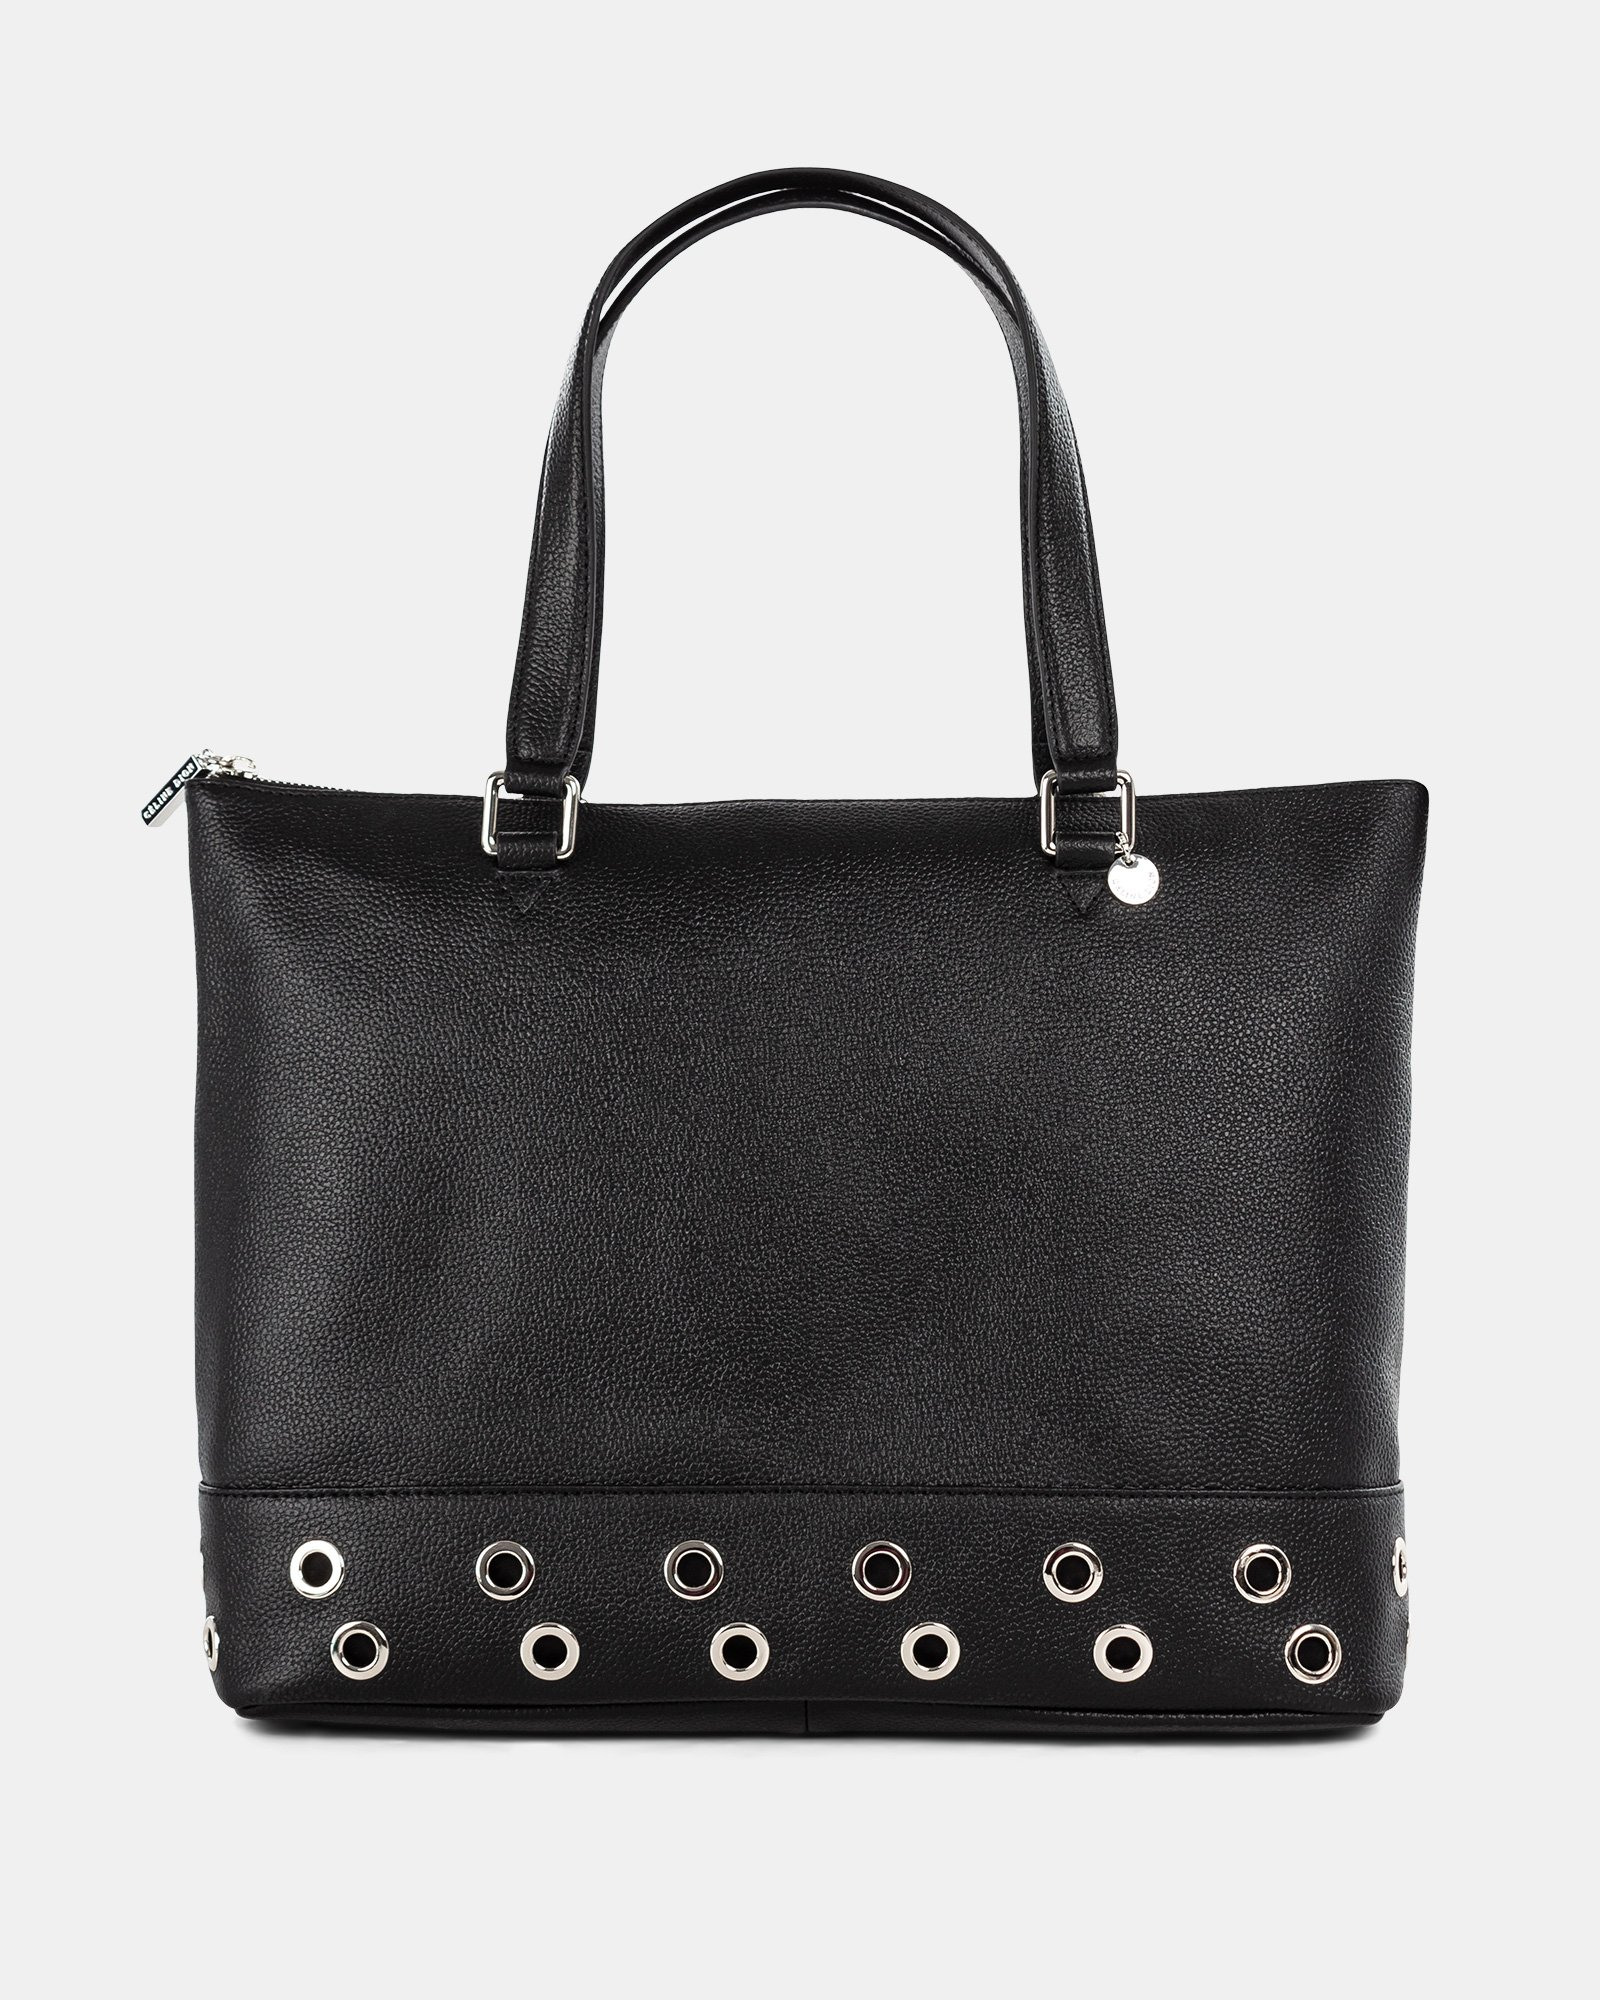 FALSETTO - LEATHER TOTE BAG WITH RFID PROTECTION - BLACK - Céline Dion - Zoom